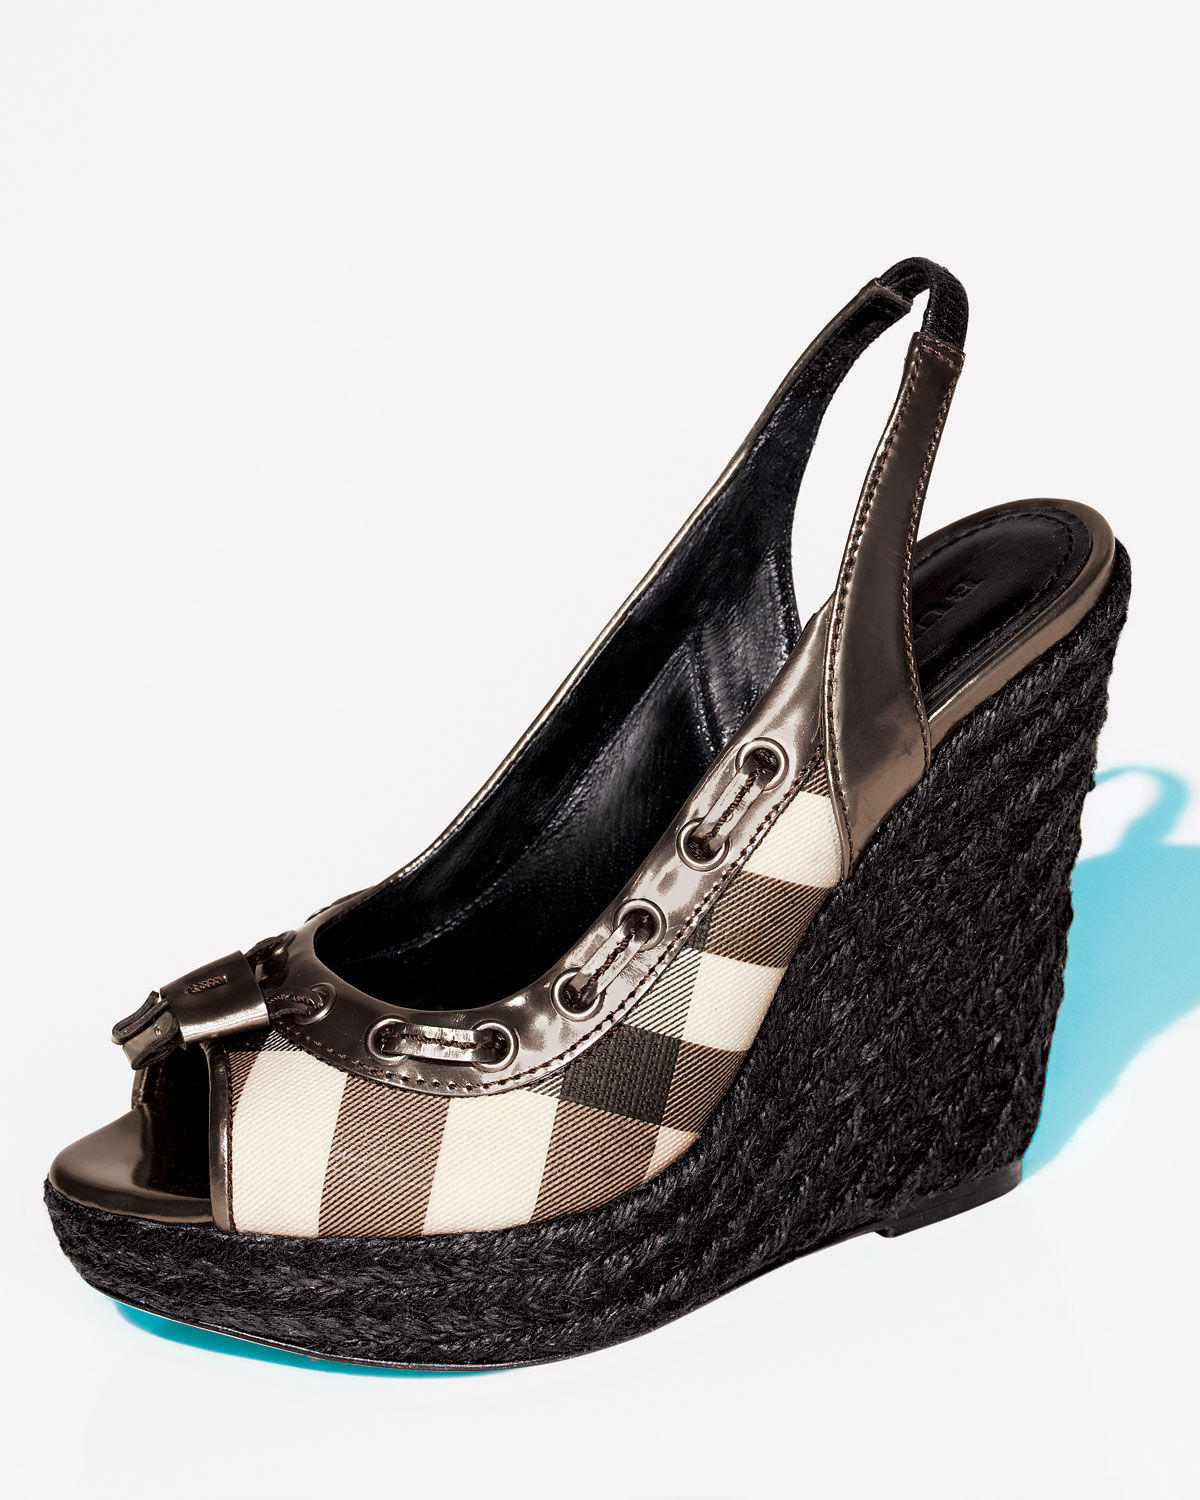 Shoes - Patent Leather Espadrille - Neiman Marcus :  fashion leather style womens